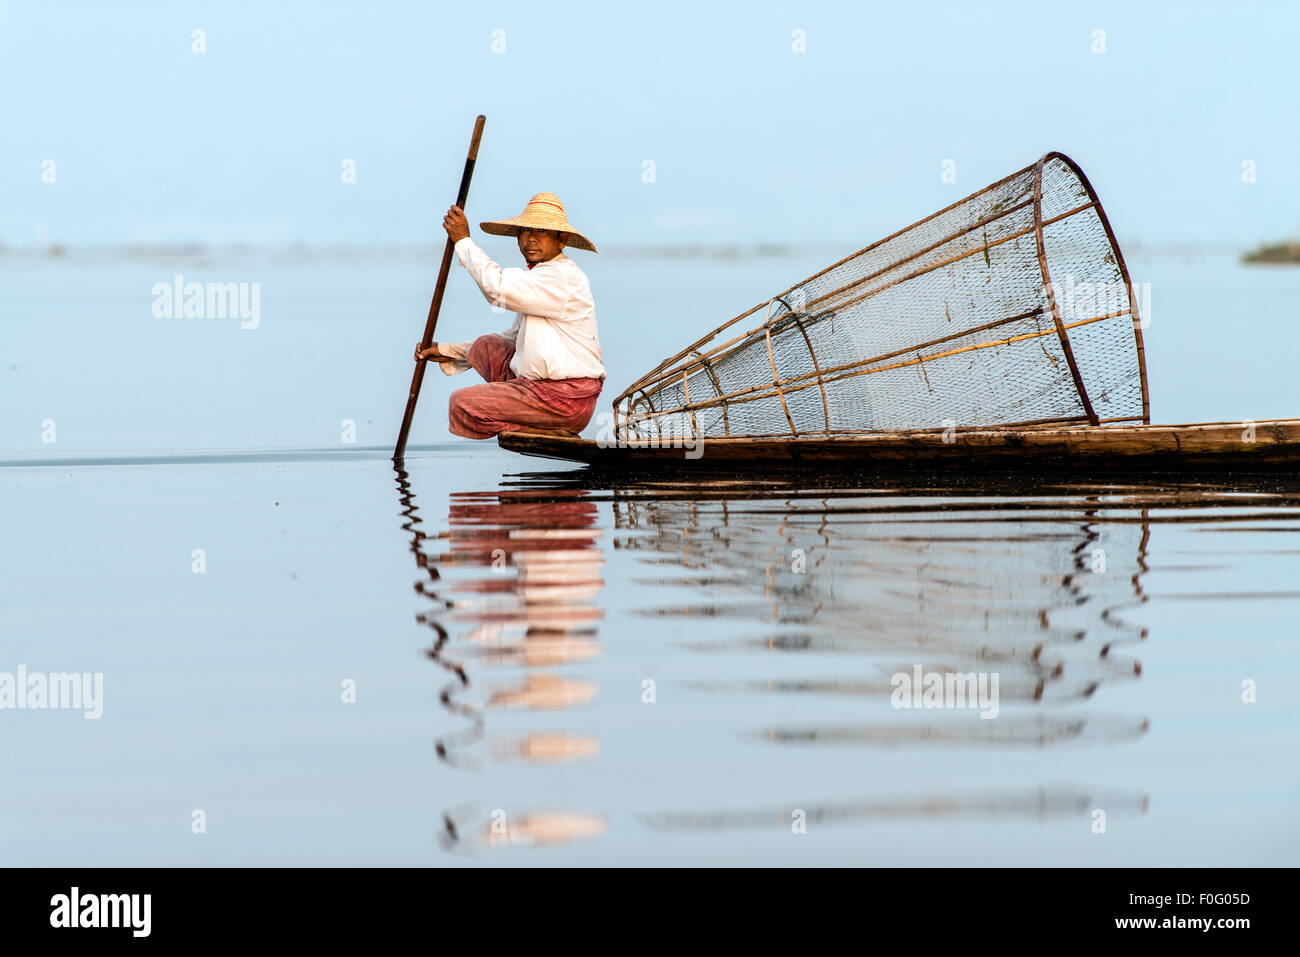 Burmese fisherman fishing Inle Lake Nyaungshwe Myanmar Burma - Stock Image